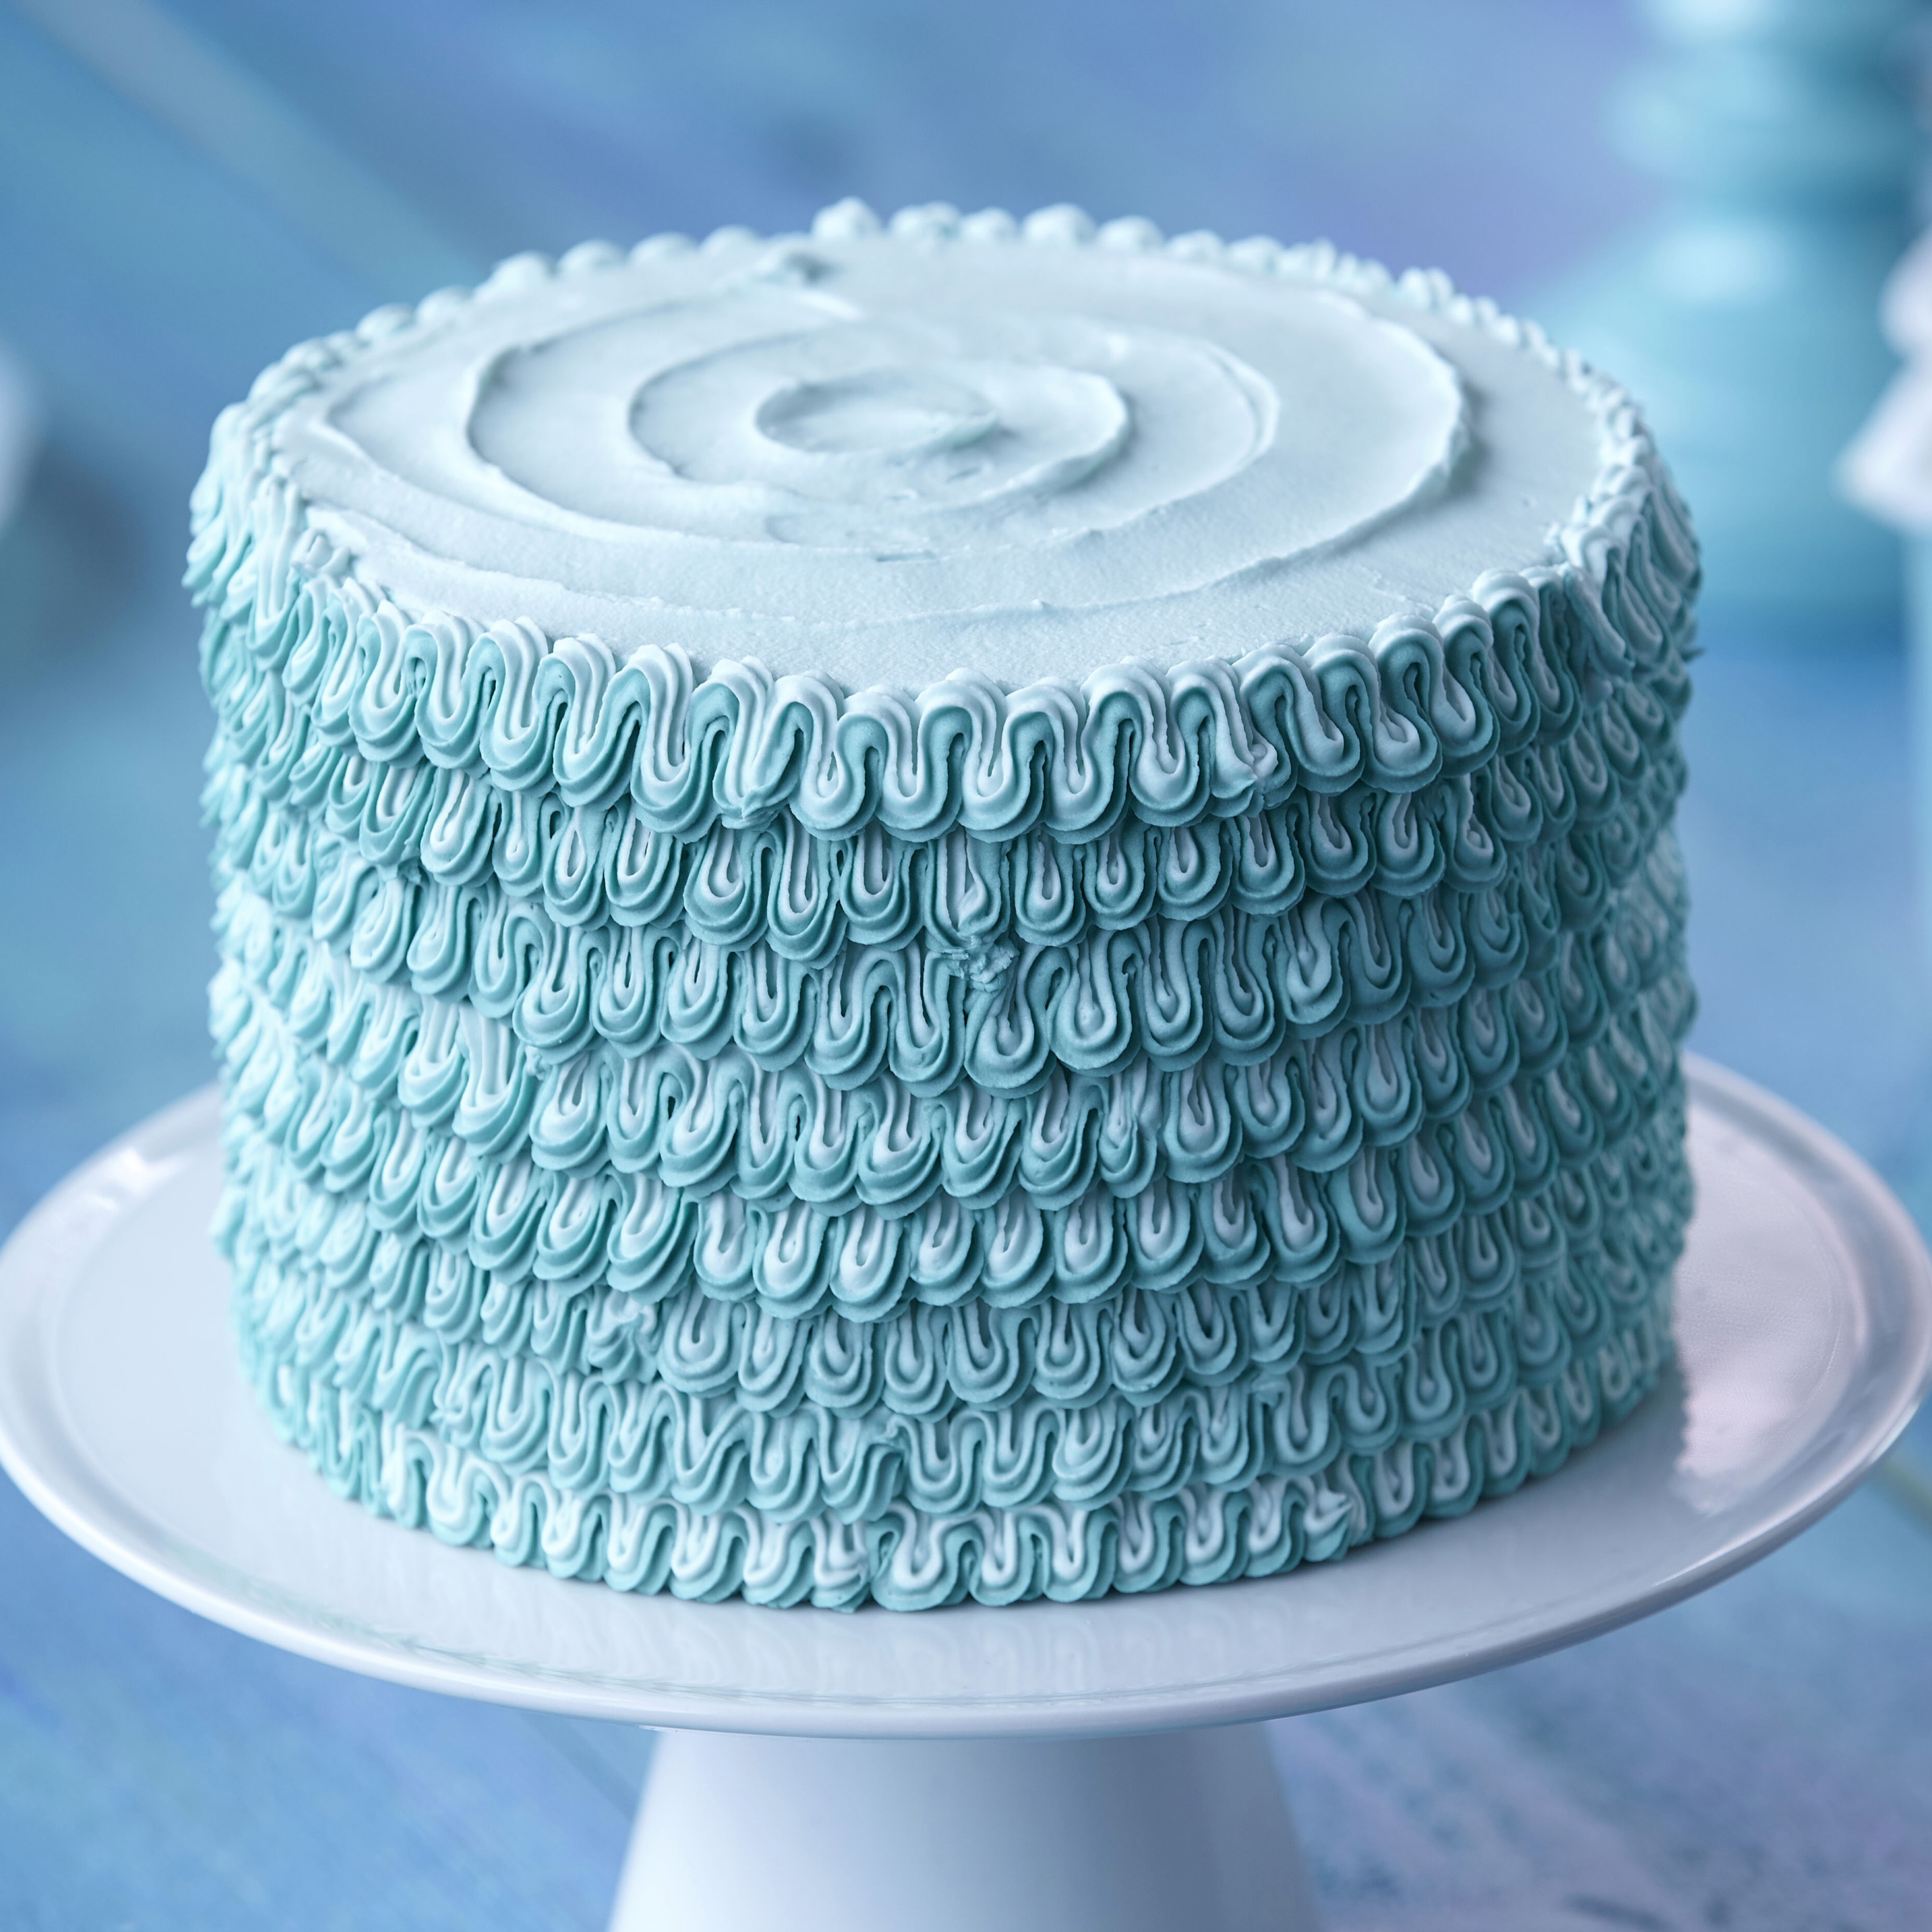 Best Learn To Decorate A Cake With A Wilton Method Class™ This Month